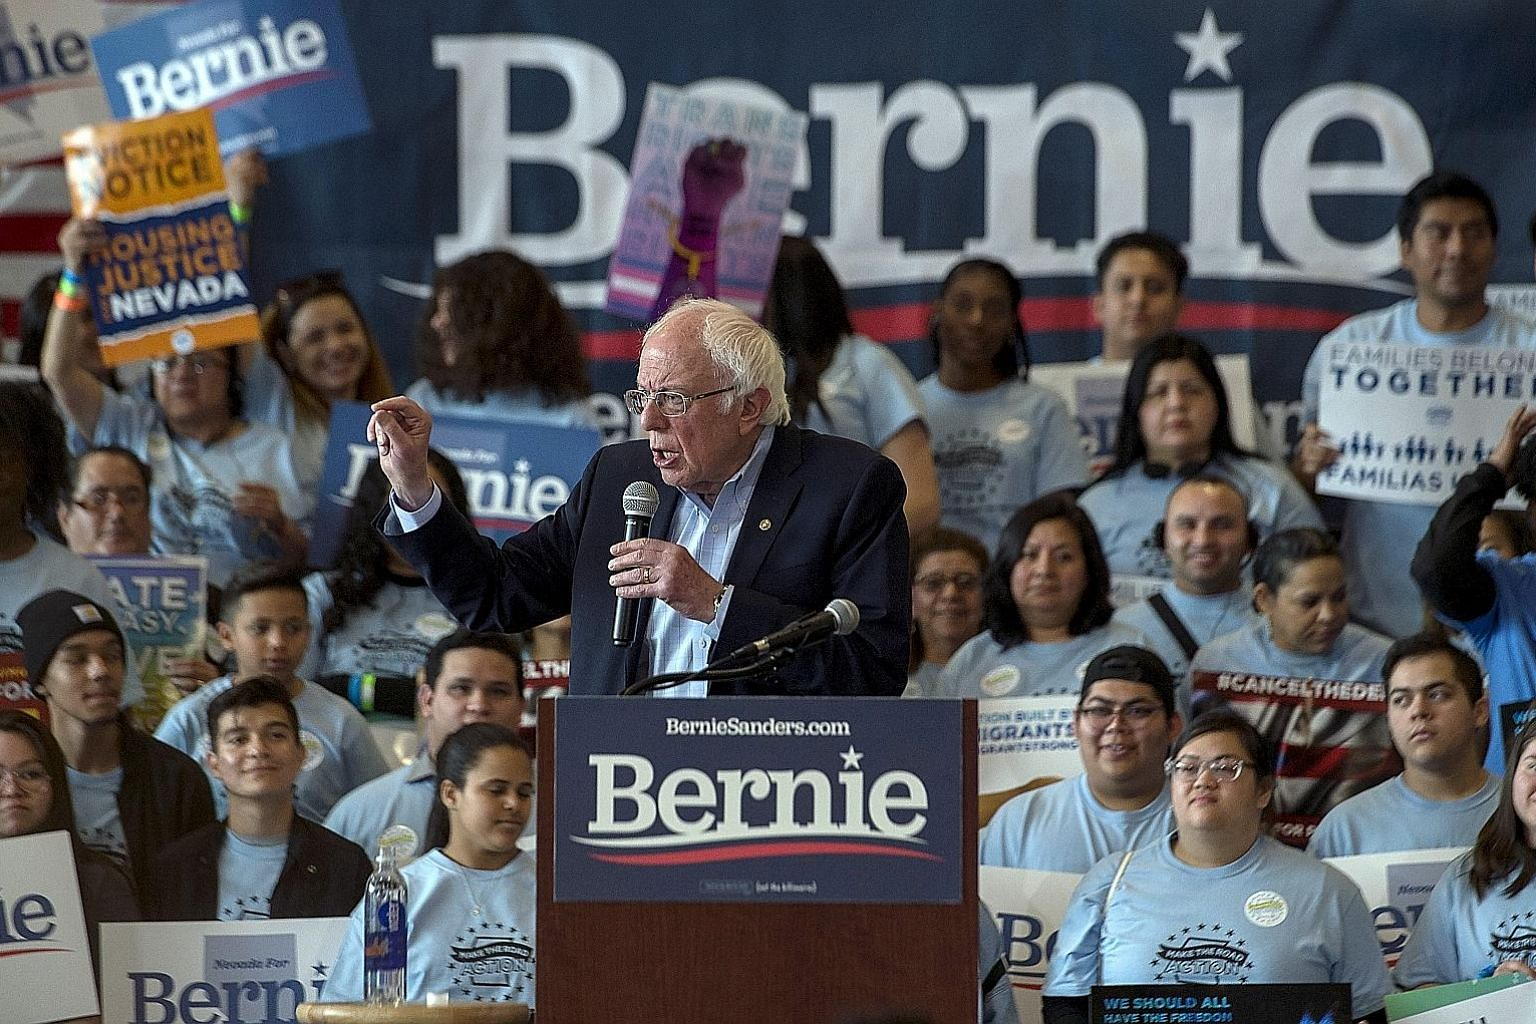 Mr Bernie Sanders (above) at a campaign rally in Las Vegas on Saturday. He was called out on his supporters' behaviour by rival Joe Biden (above, right). PHOTOS: NYTIMES, AGENCE FRANCE-PRESSE